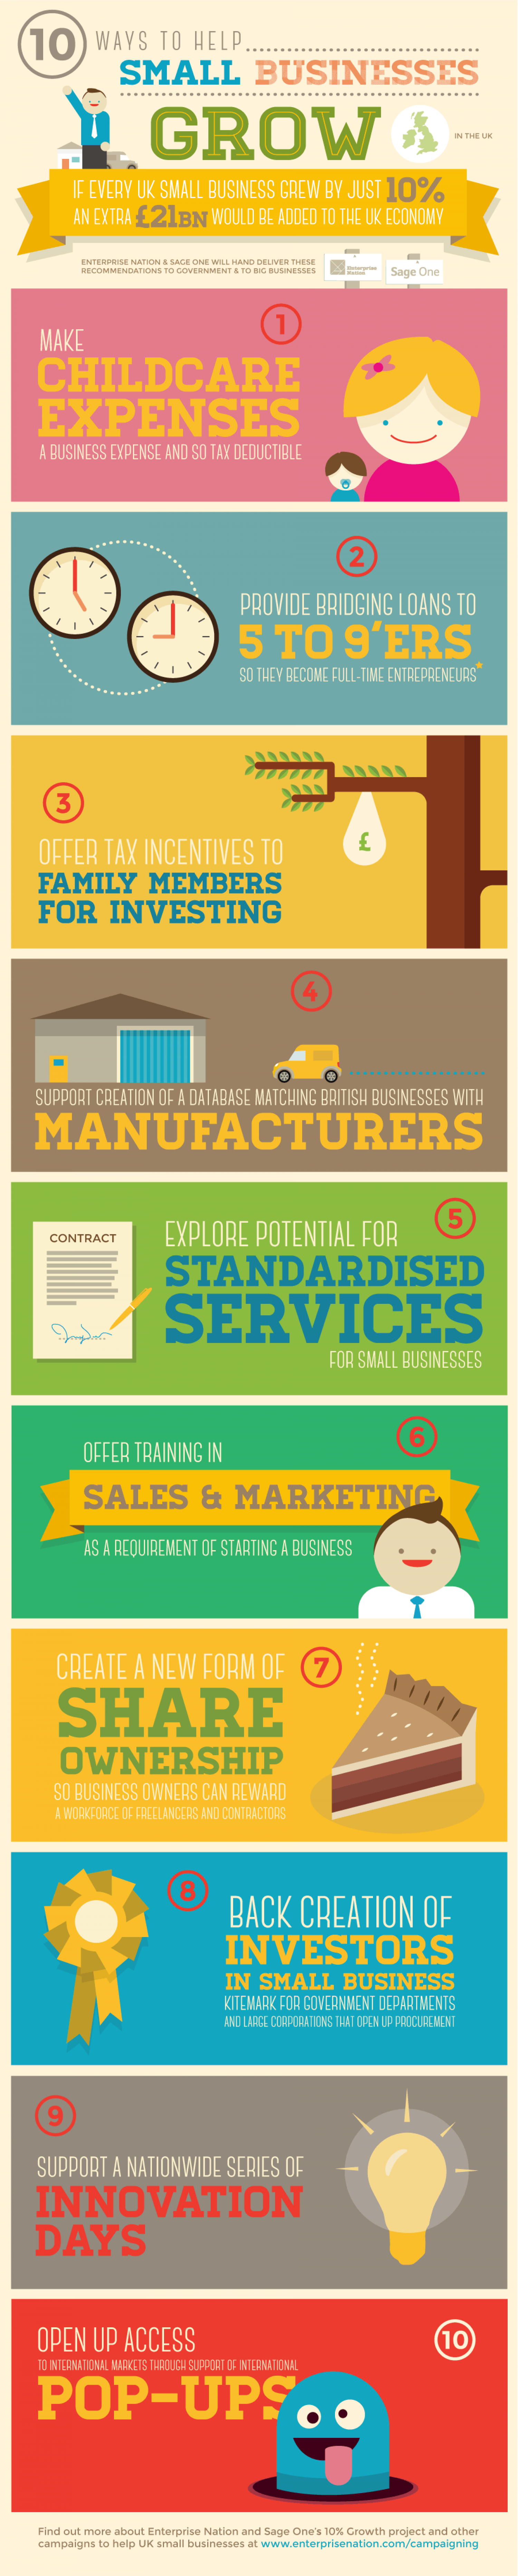 10 Ways to Help Small Businesses Grow Infographic